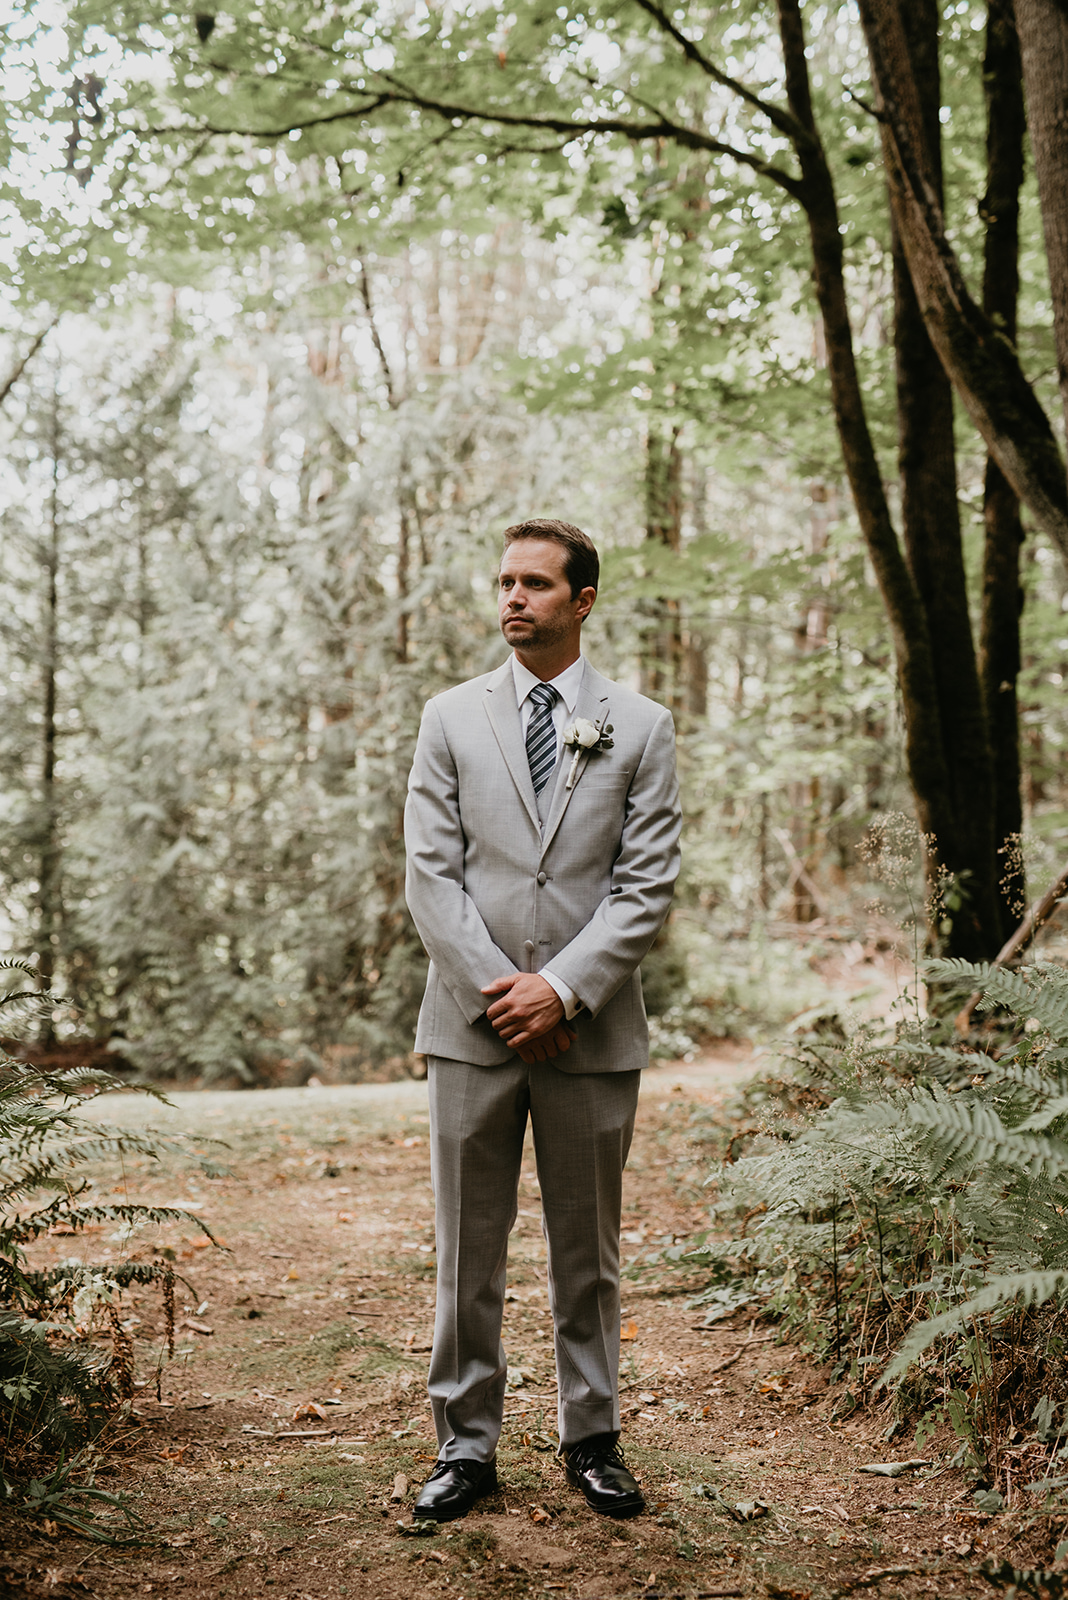 Thompson Wedding in Seattle, Washington - Groom